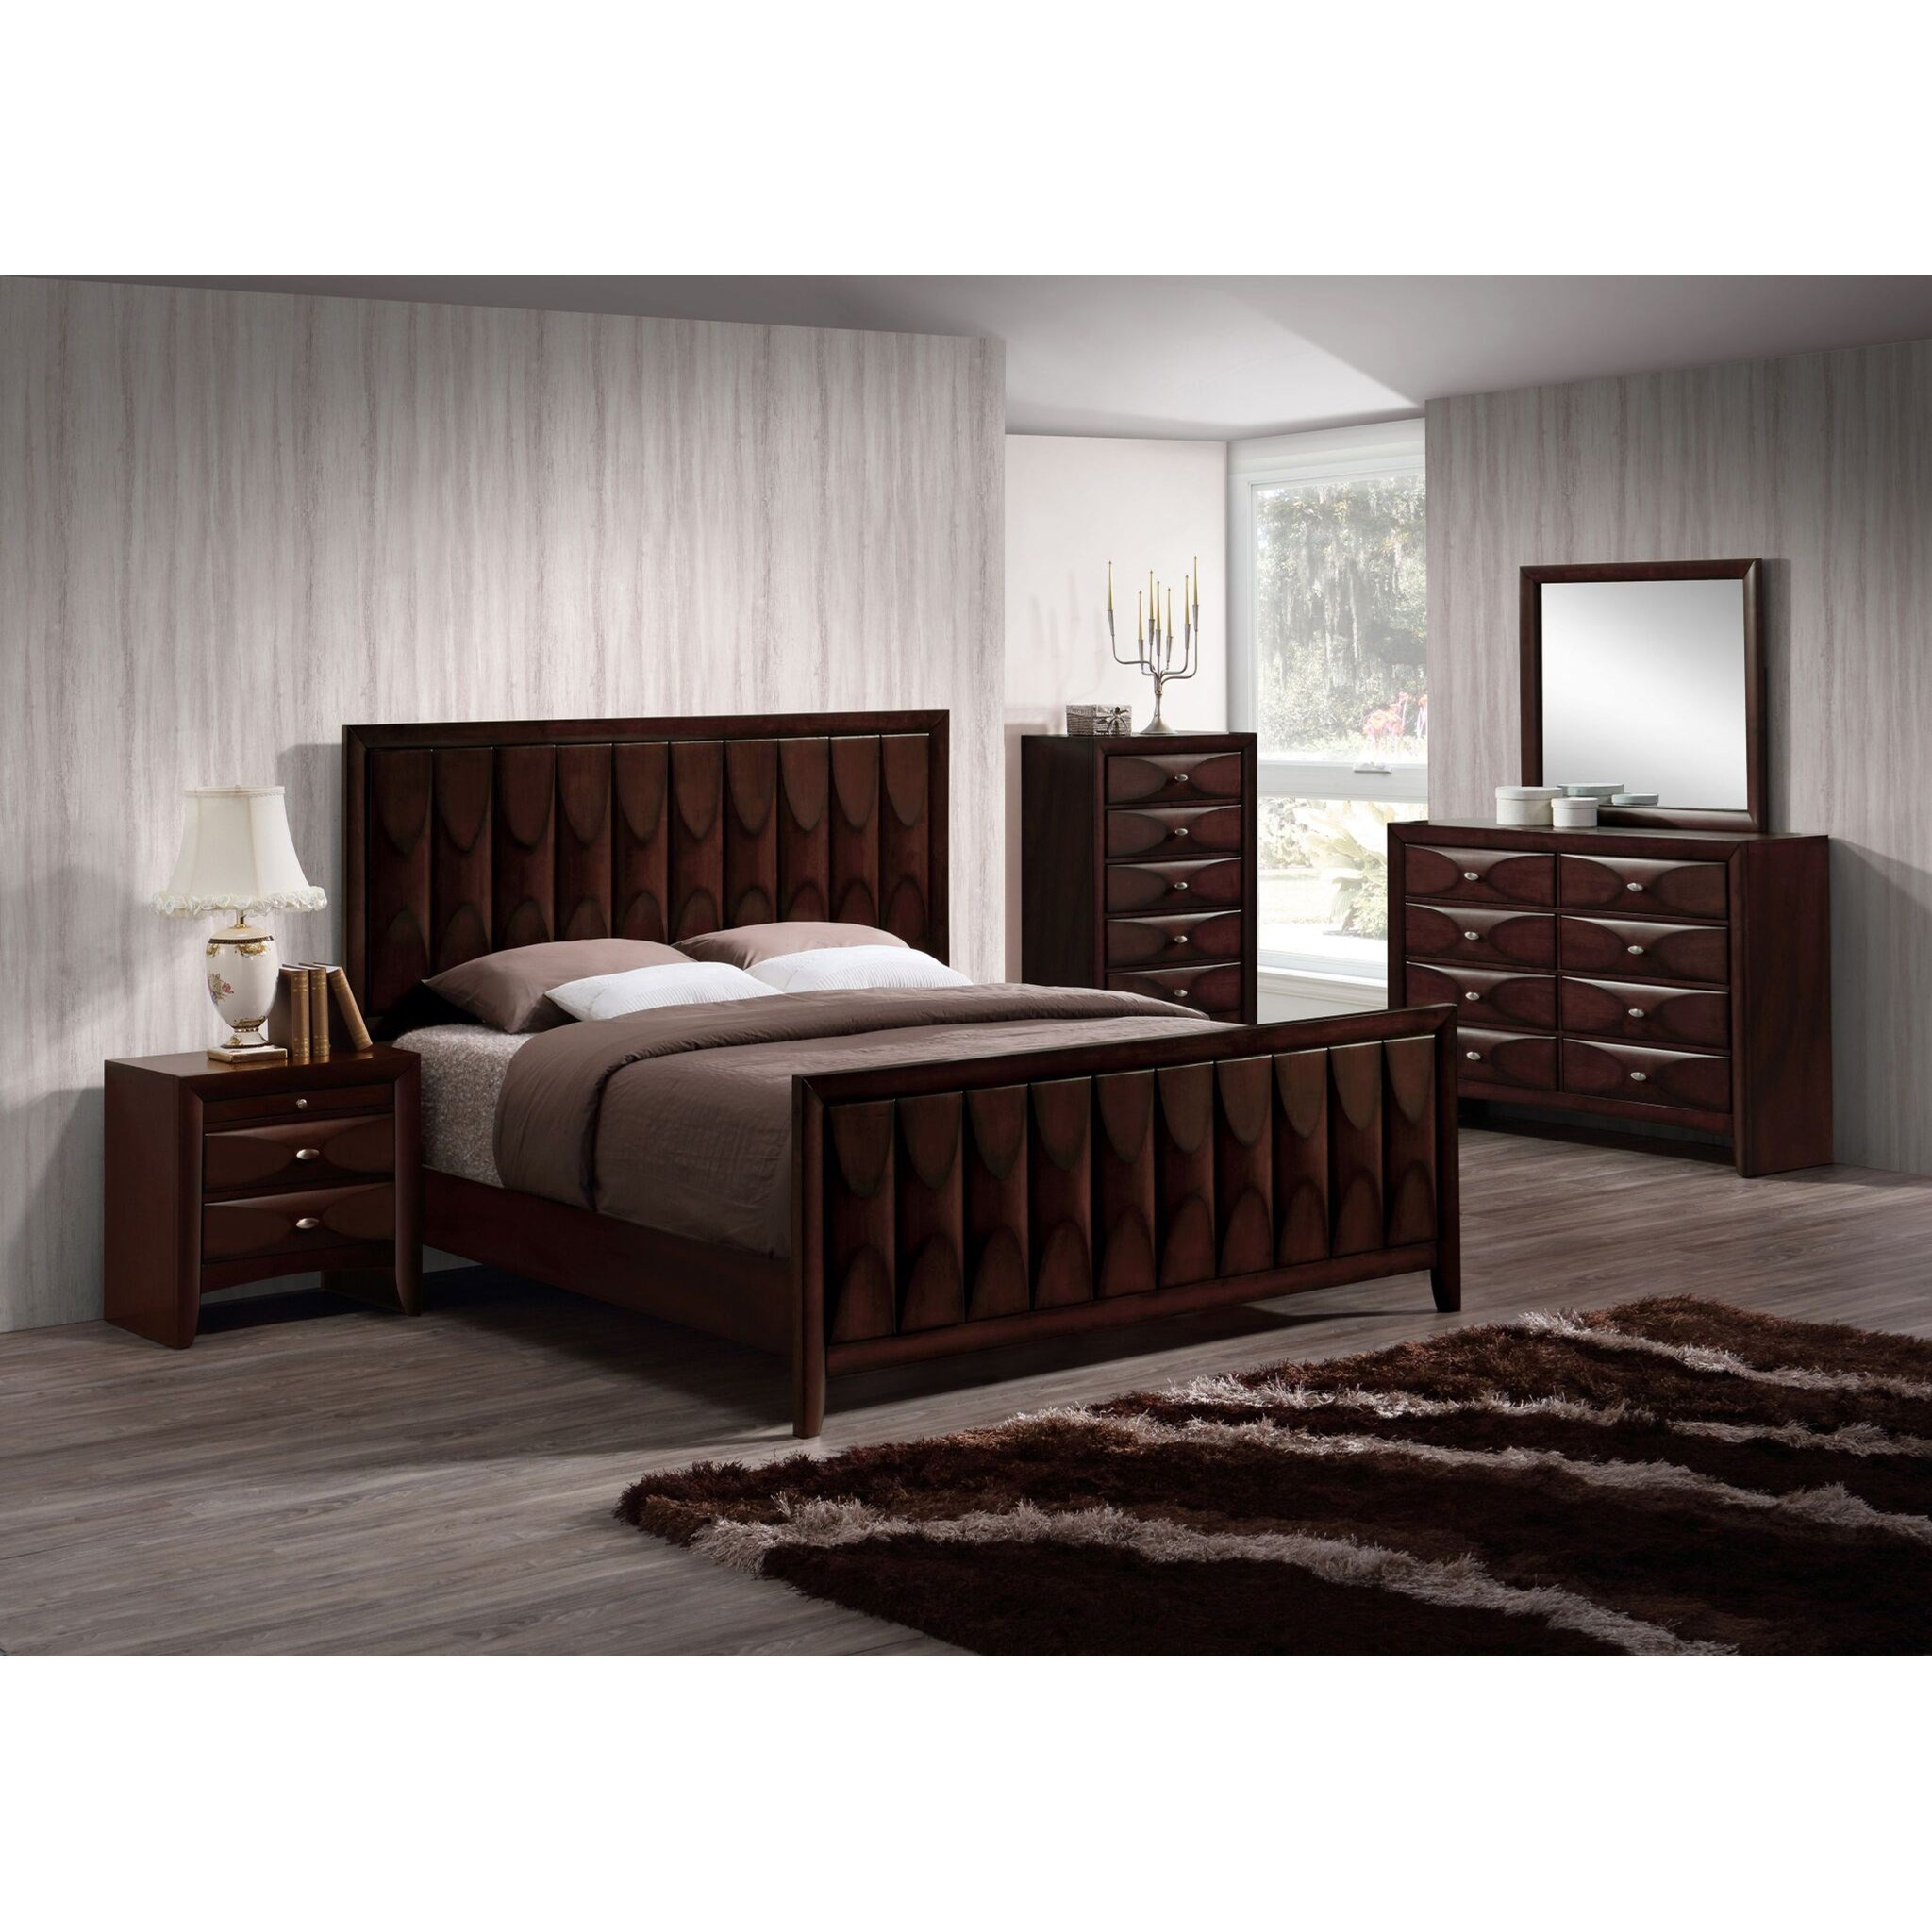 Lifestyle Banfield 5PC Queen Bedroom Set - Item Number: 6181B Q Bedroom Group